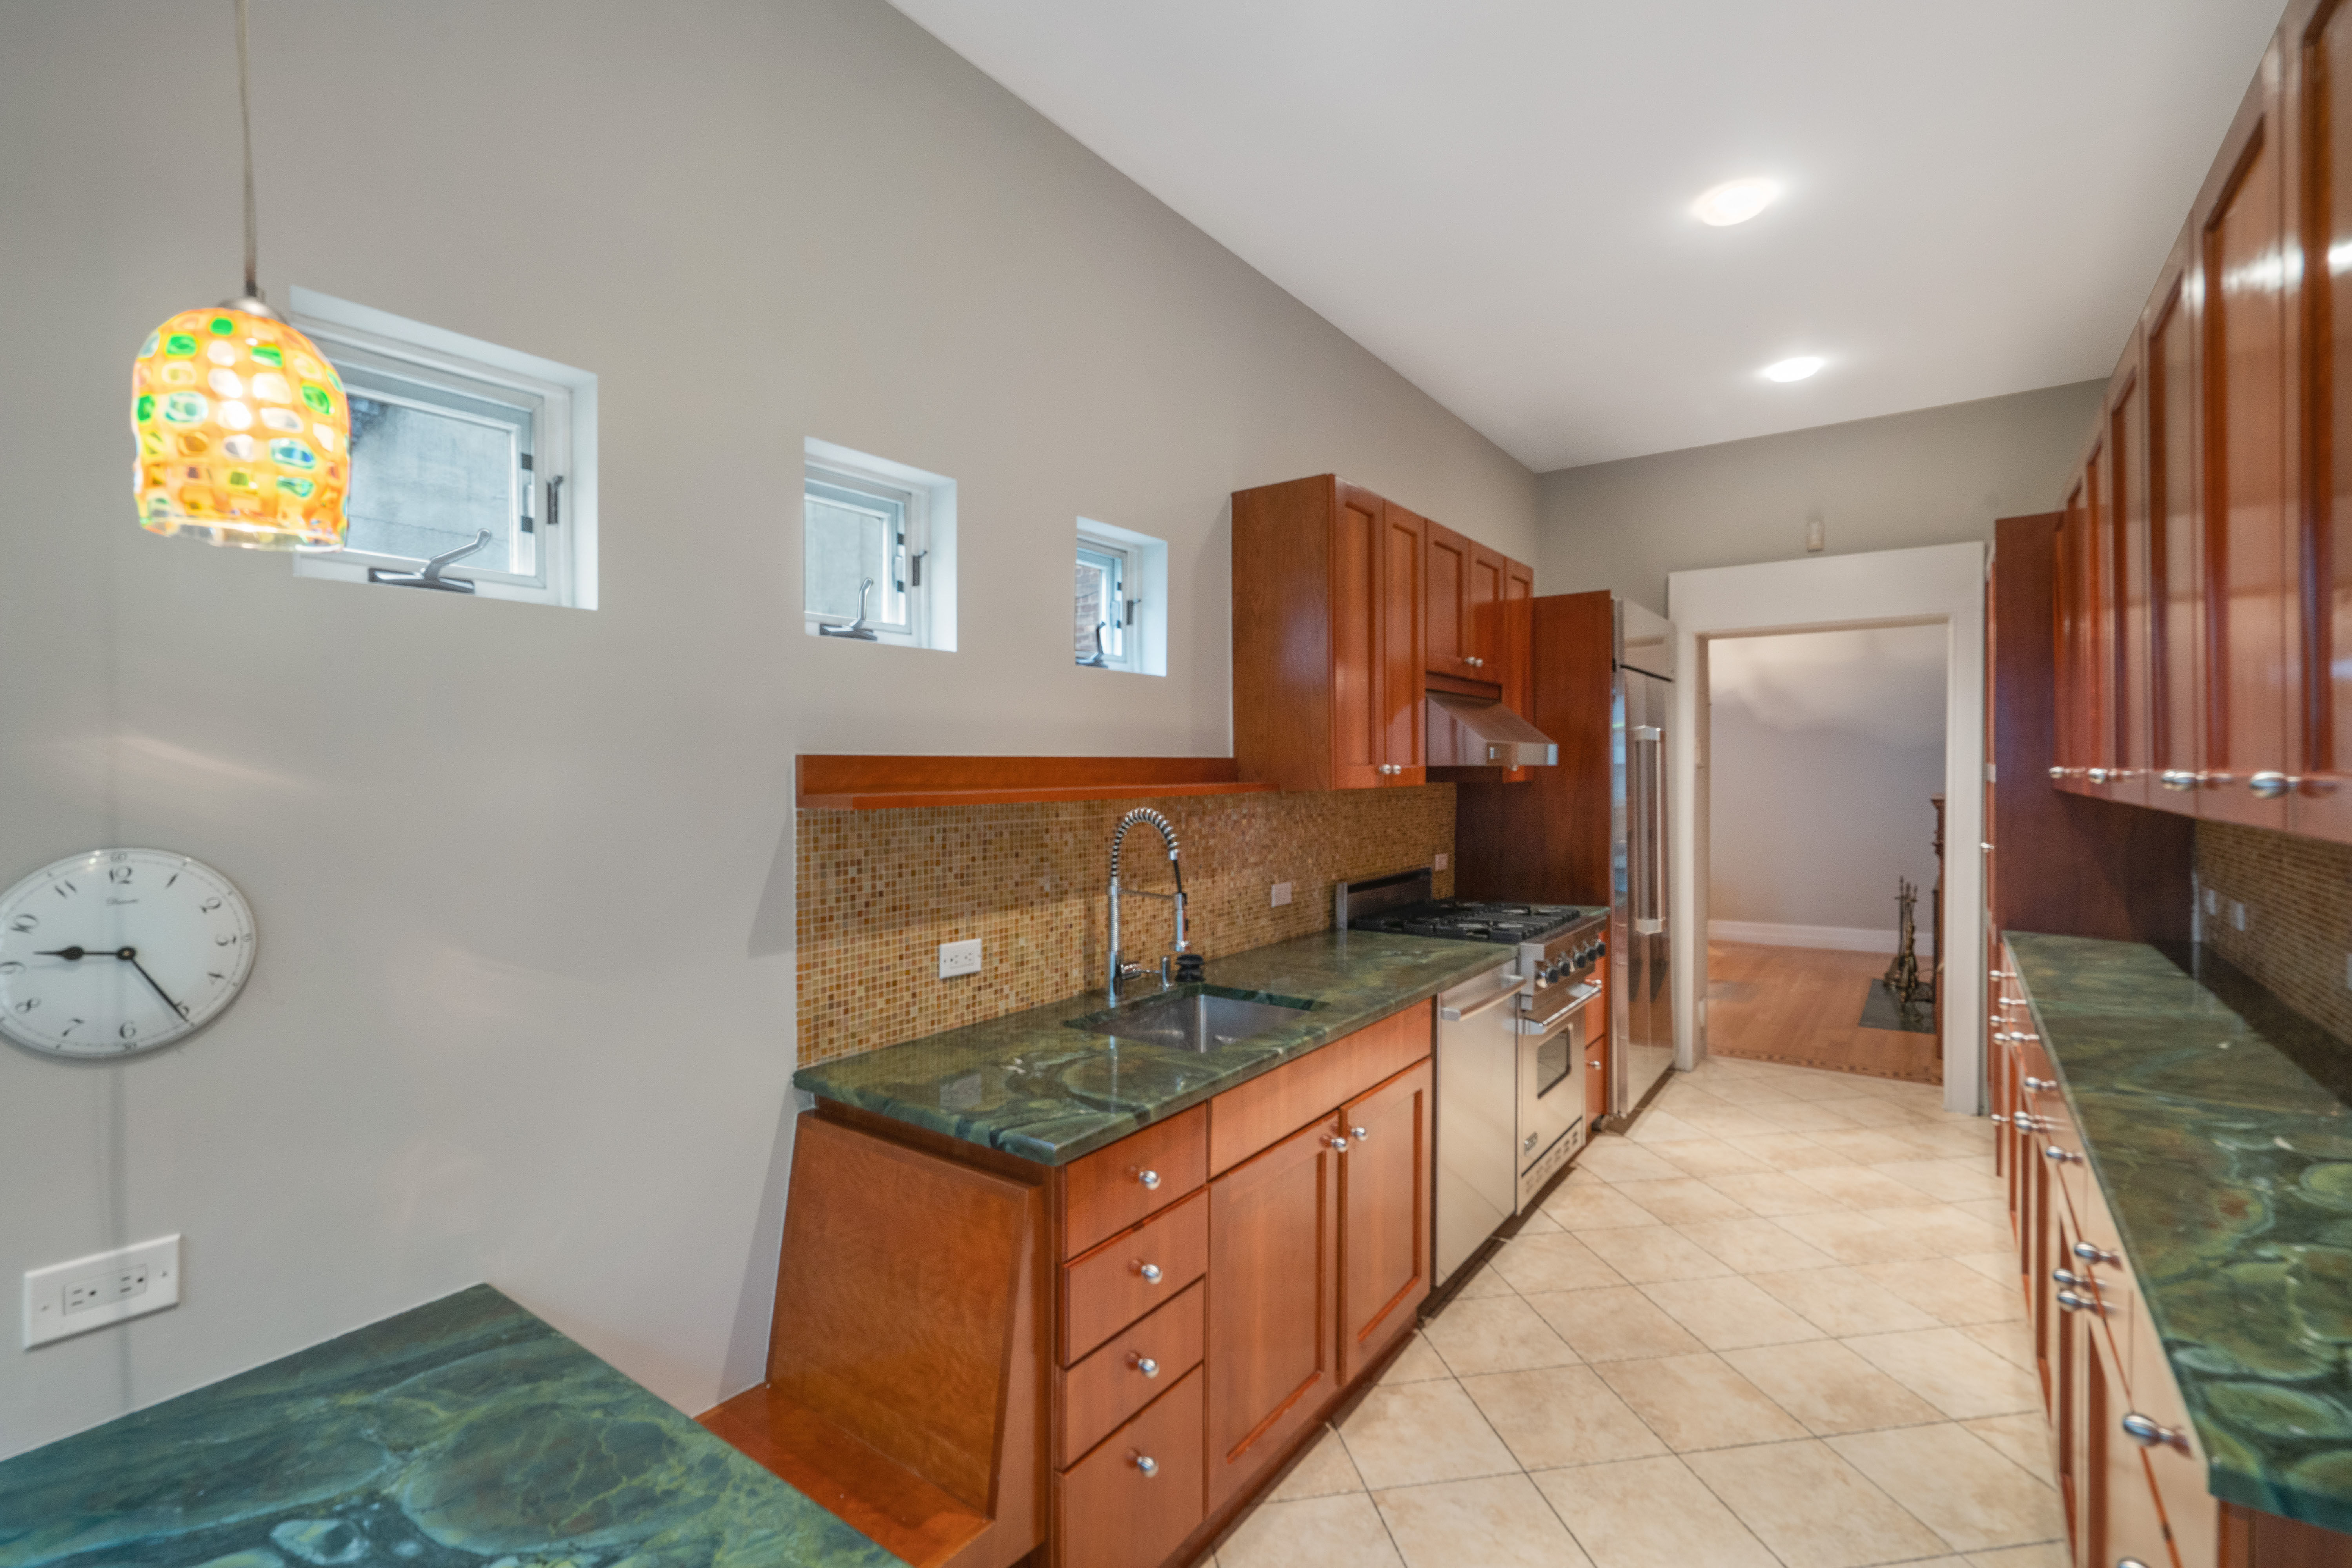 594 2nd St Photo 14 - BROWNSTONER-LISTING-47512a55ccfbbeb19b0a8fb315f62163